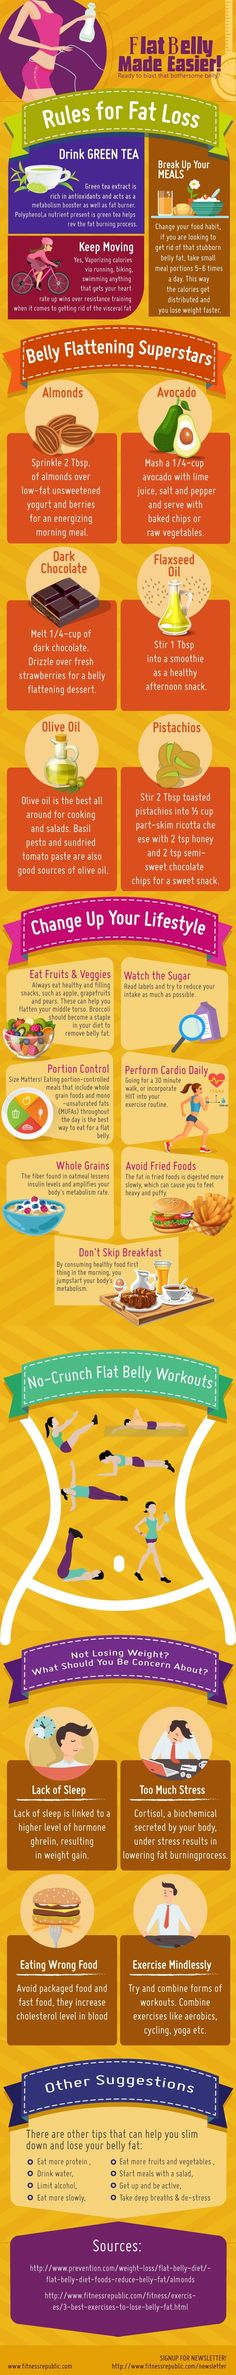 Infographic: Tips For Attaining A Flat Stomach, What To Eat And Do To Burn Fat